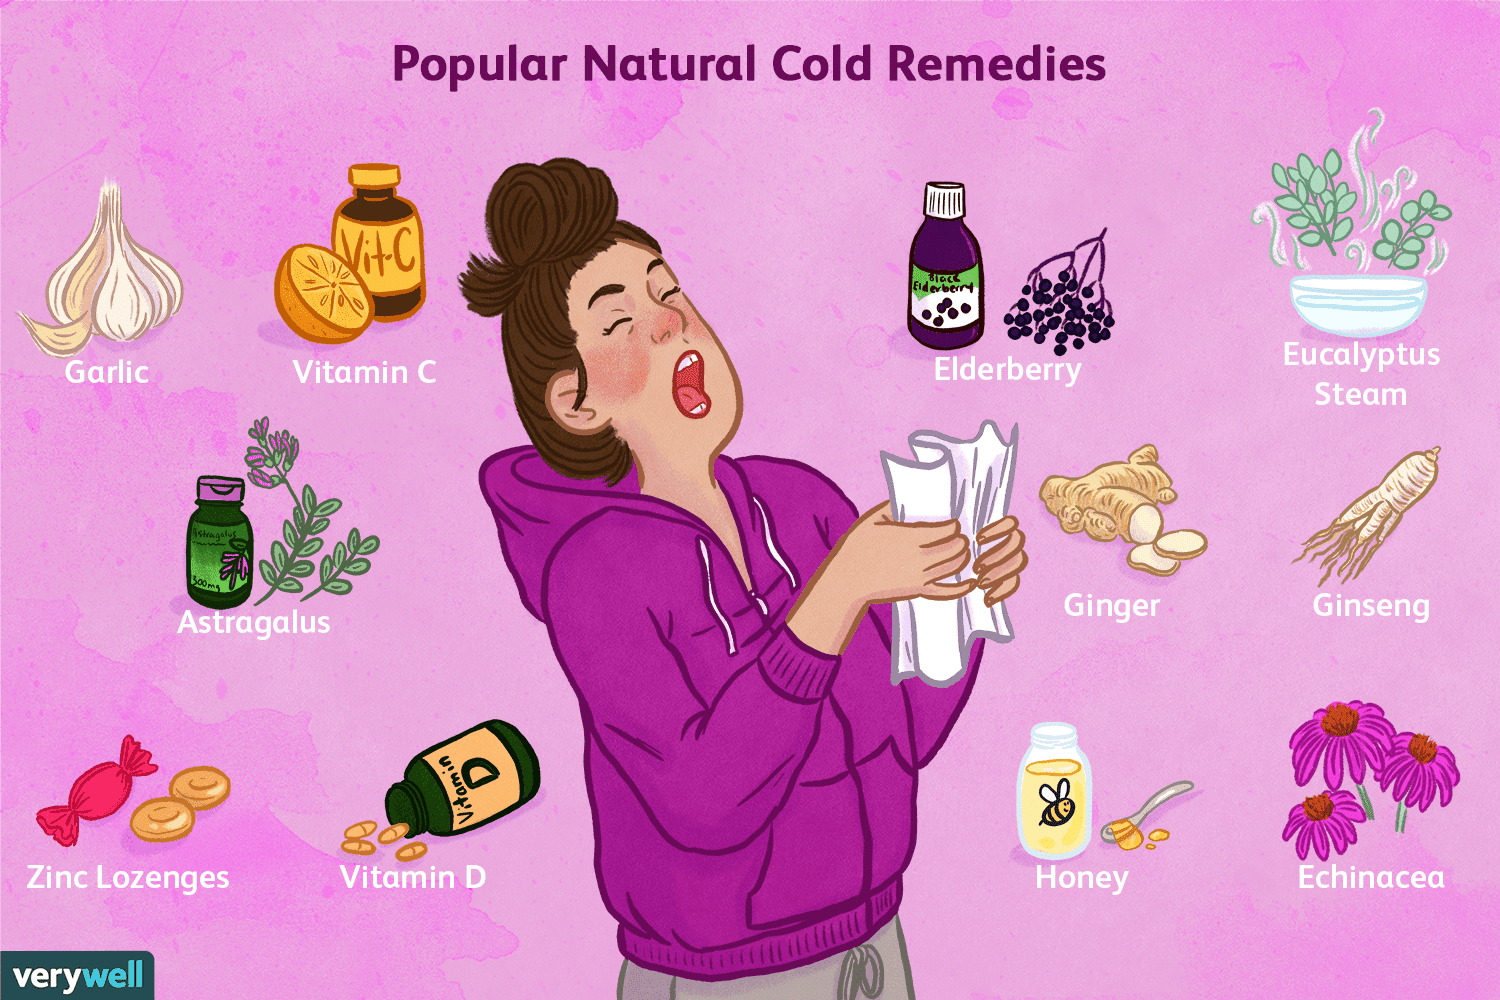 Popular Natural Remedies for the Common Cold